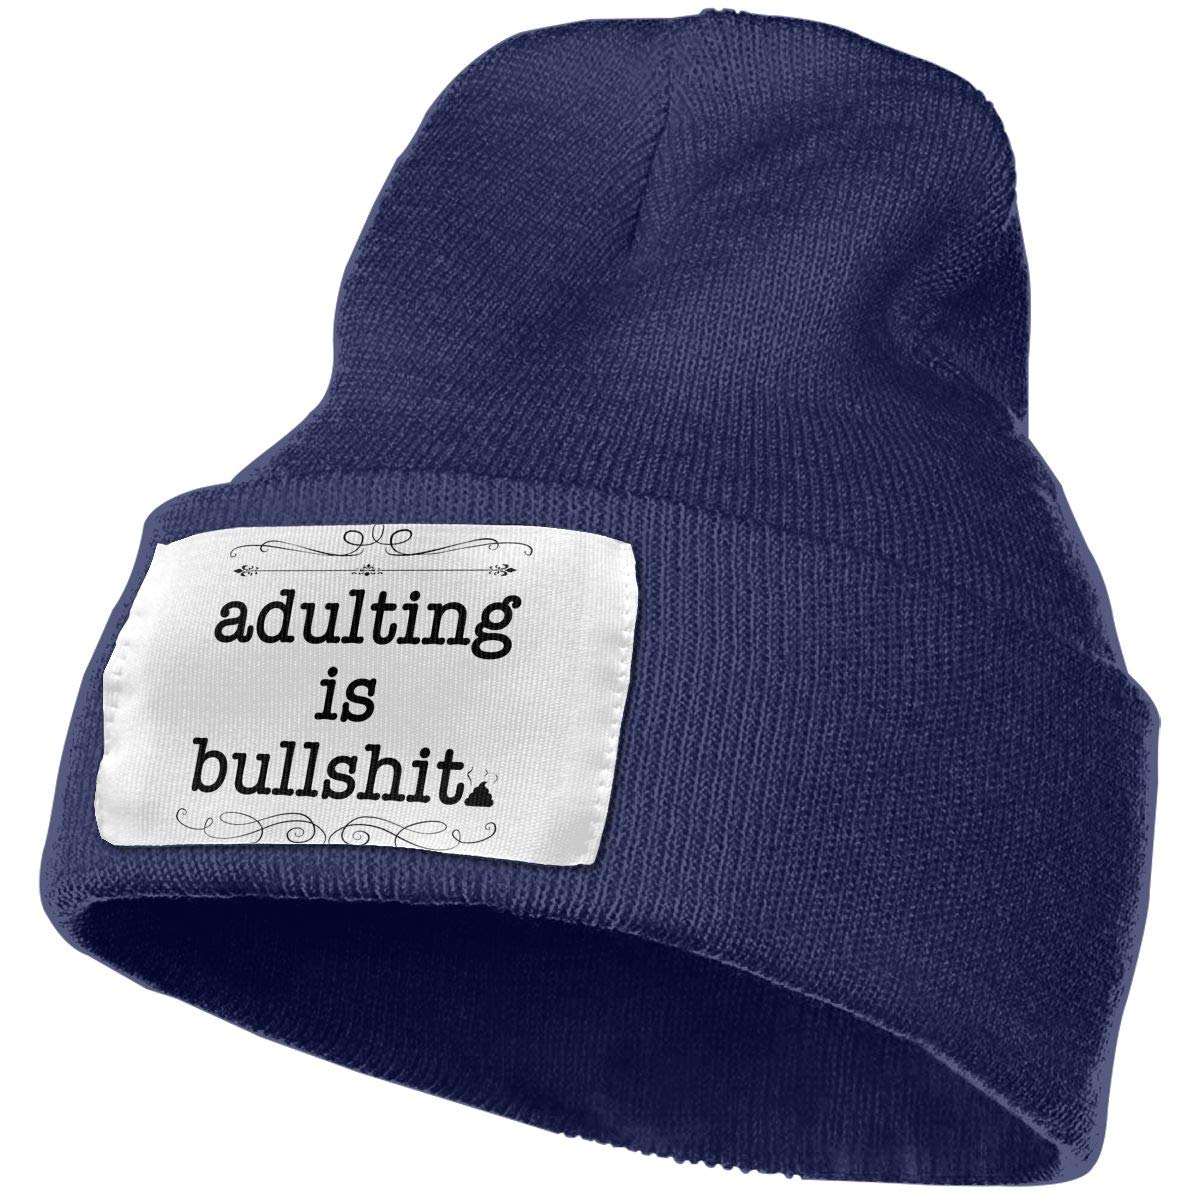 Adulting is Bullshit Men/&Women Warm Winter Knit Plain Beanie Hat Skull Cap Acrylic Knit Cuff Hat